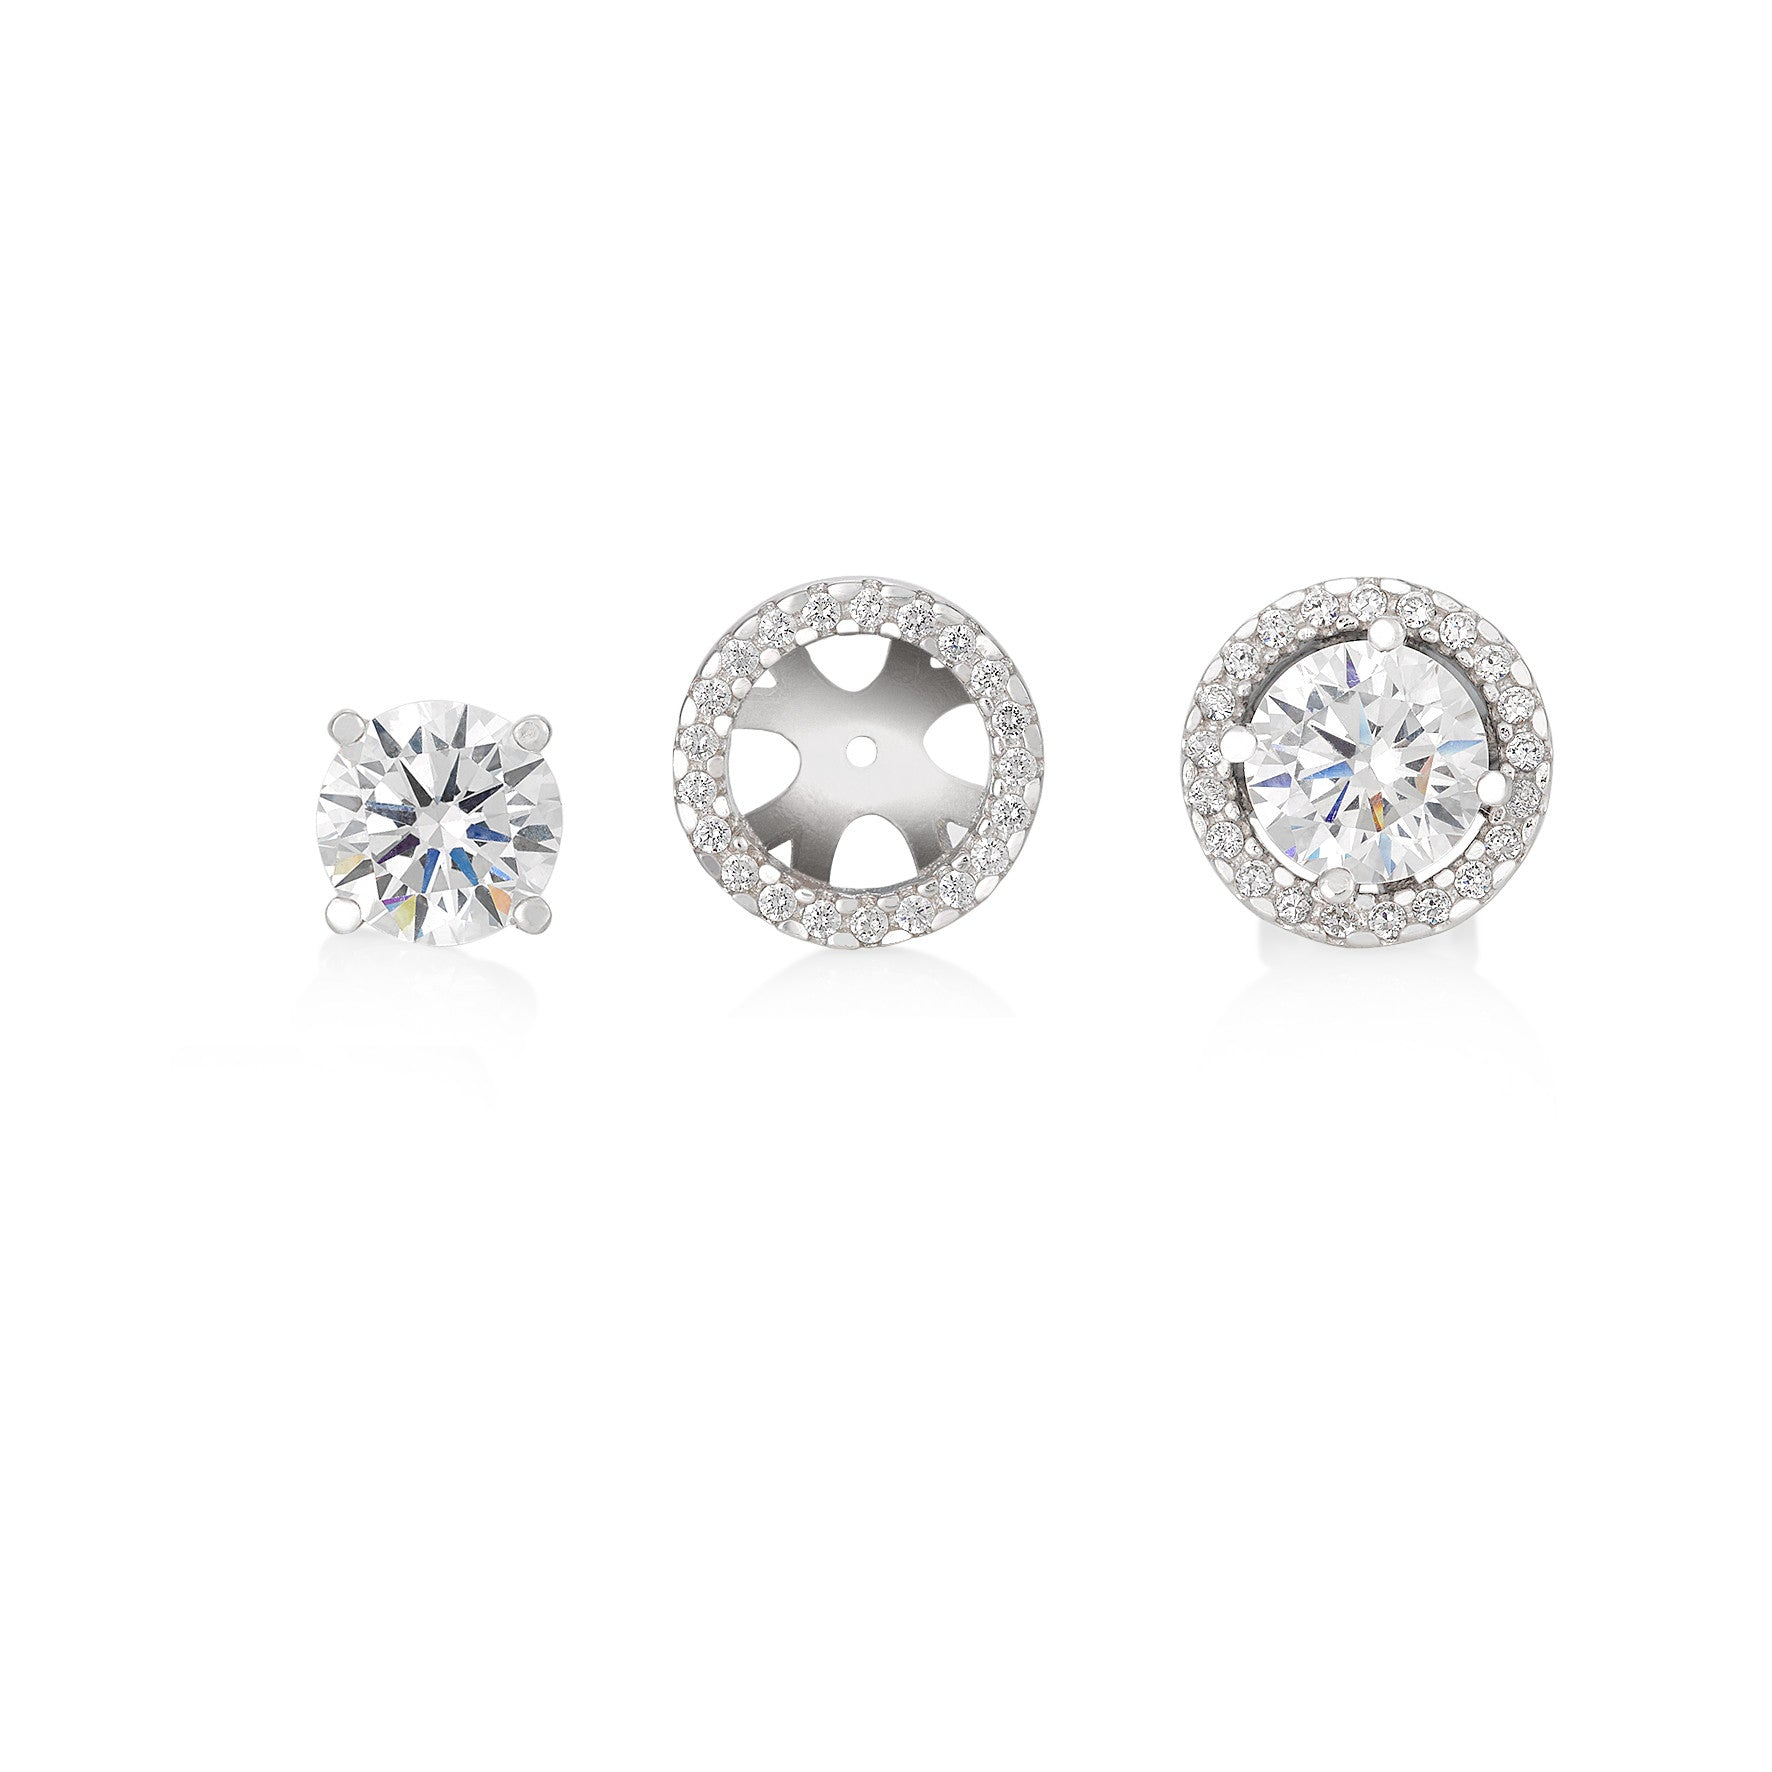 Round Brilliant Solitaire Earrings with optional Halo